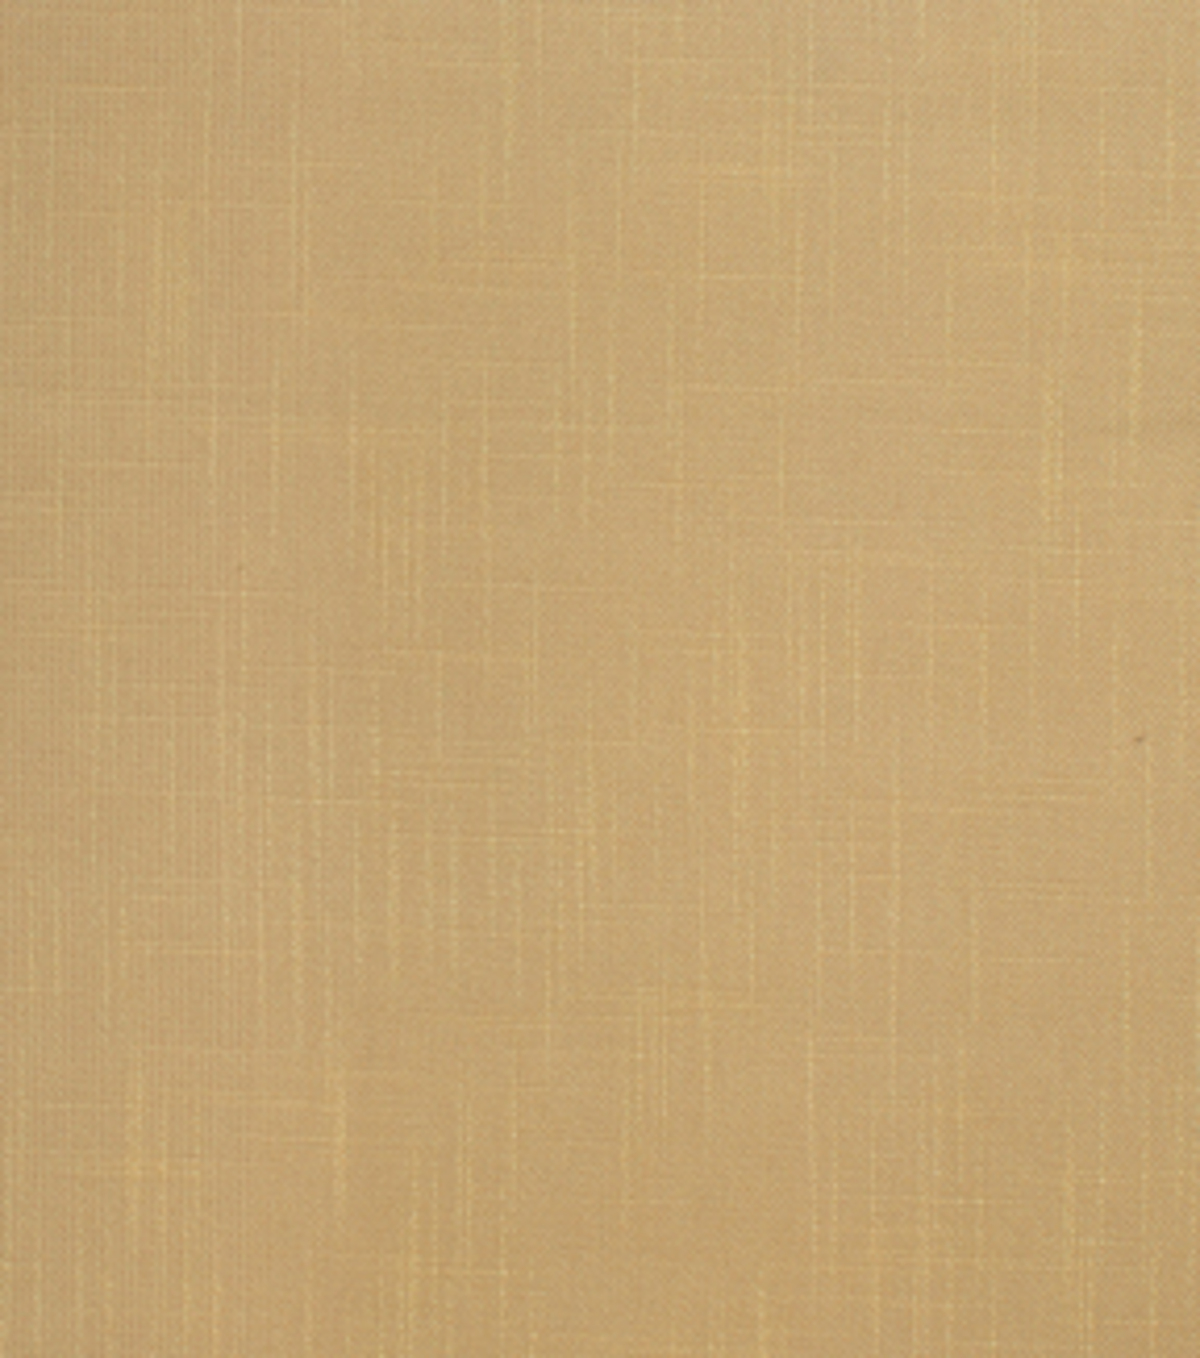 Home Decor 8\u0022x8\u0022 Fabric Swatch-Signature Series Gallantry Sand